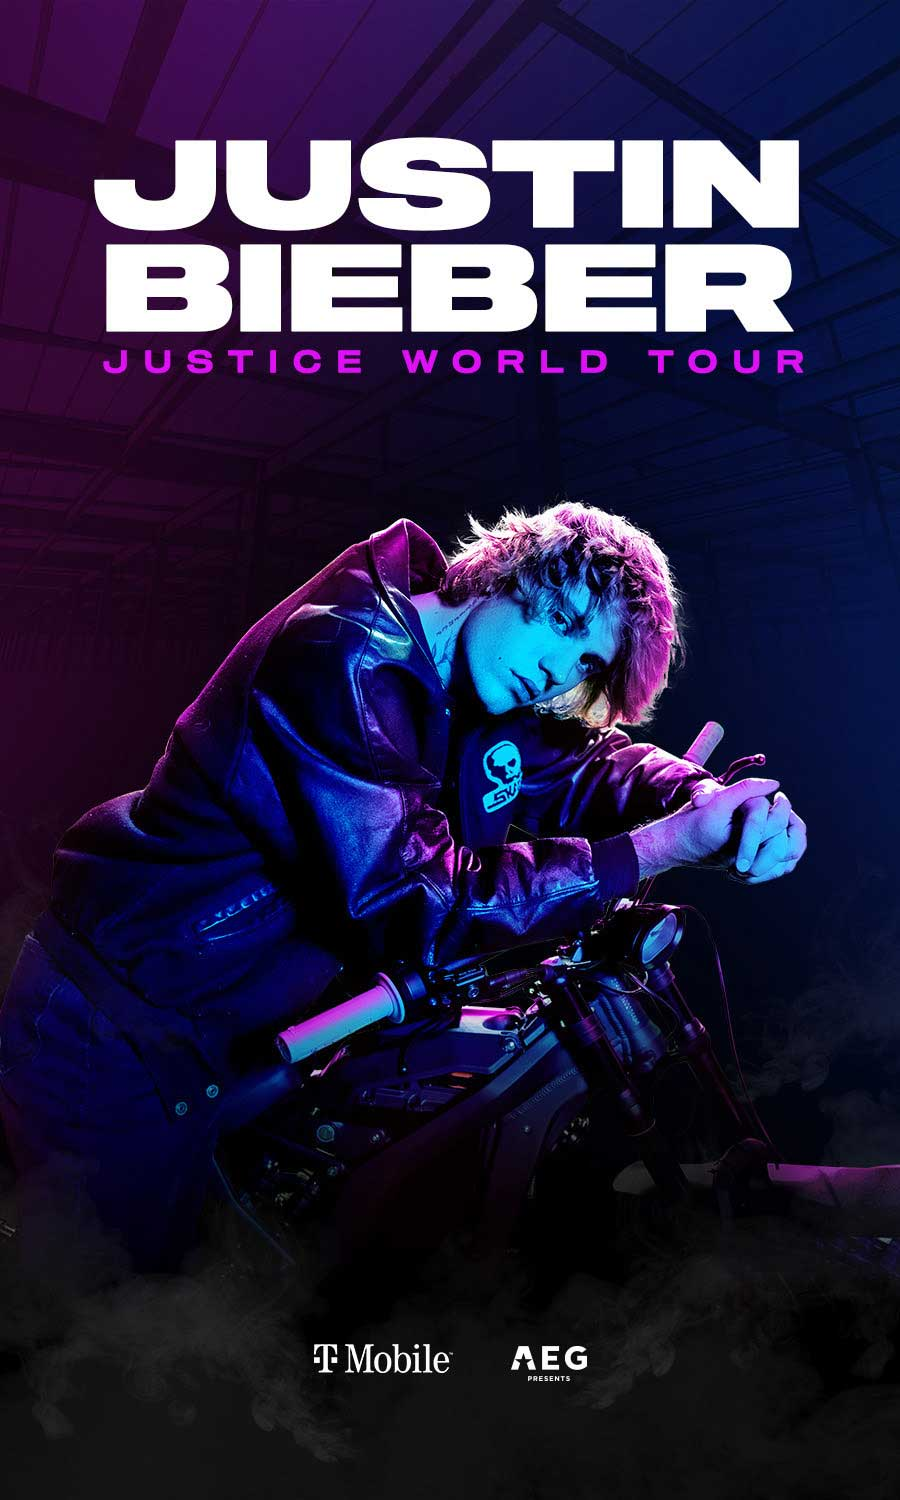 Christmas Concerts In Tulsa 2021 Tour Justin Bieber